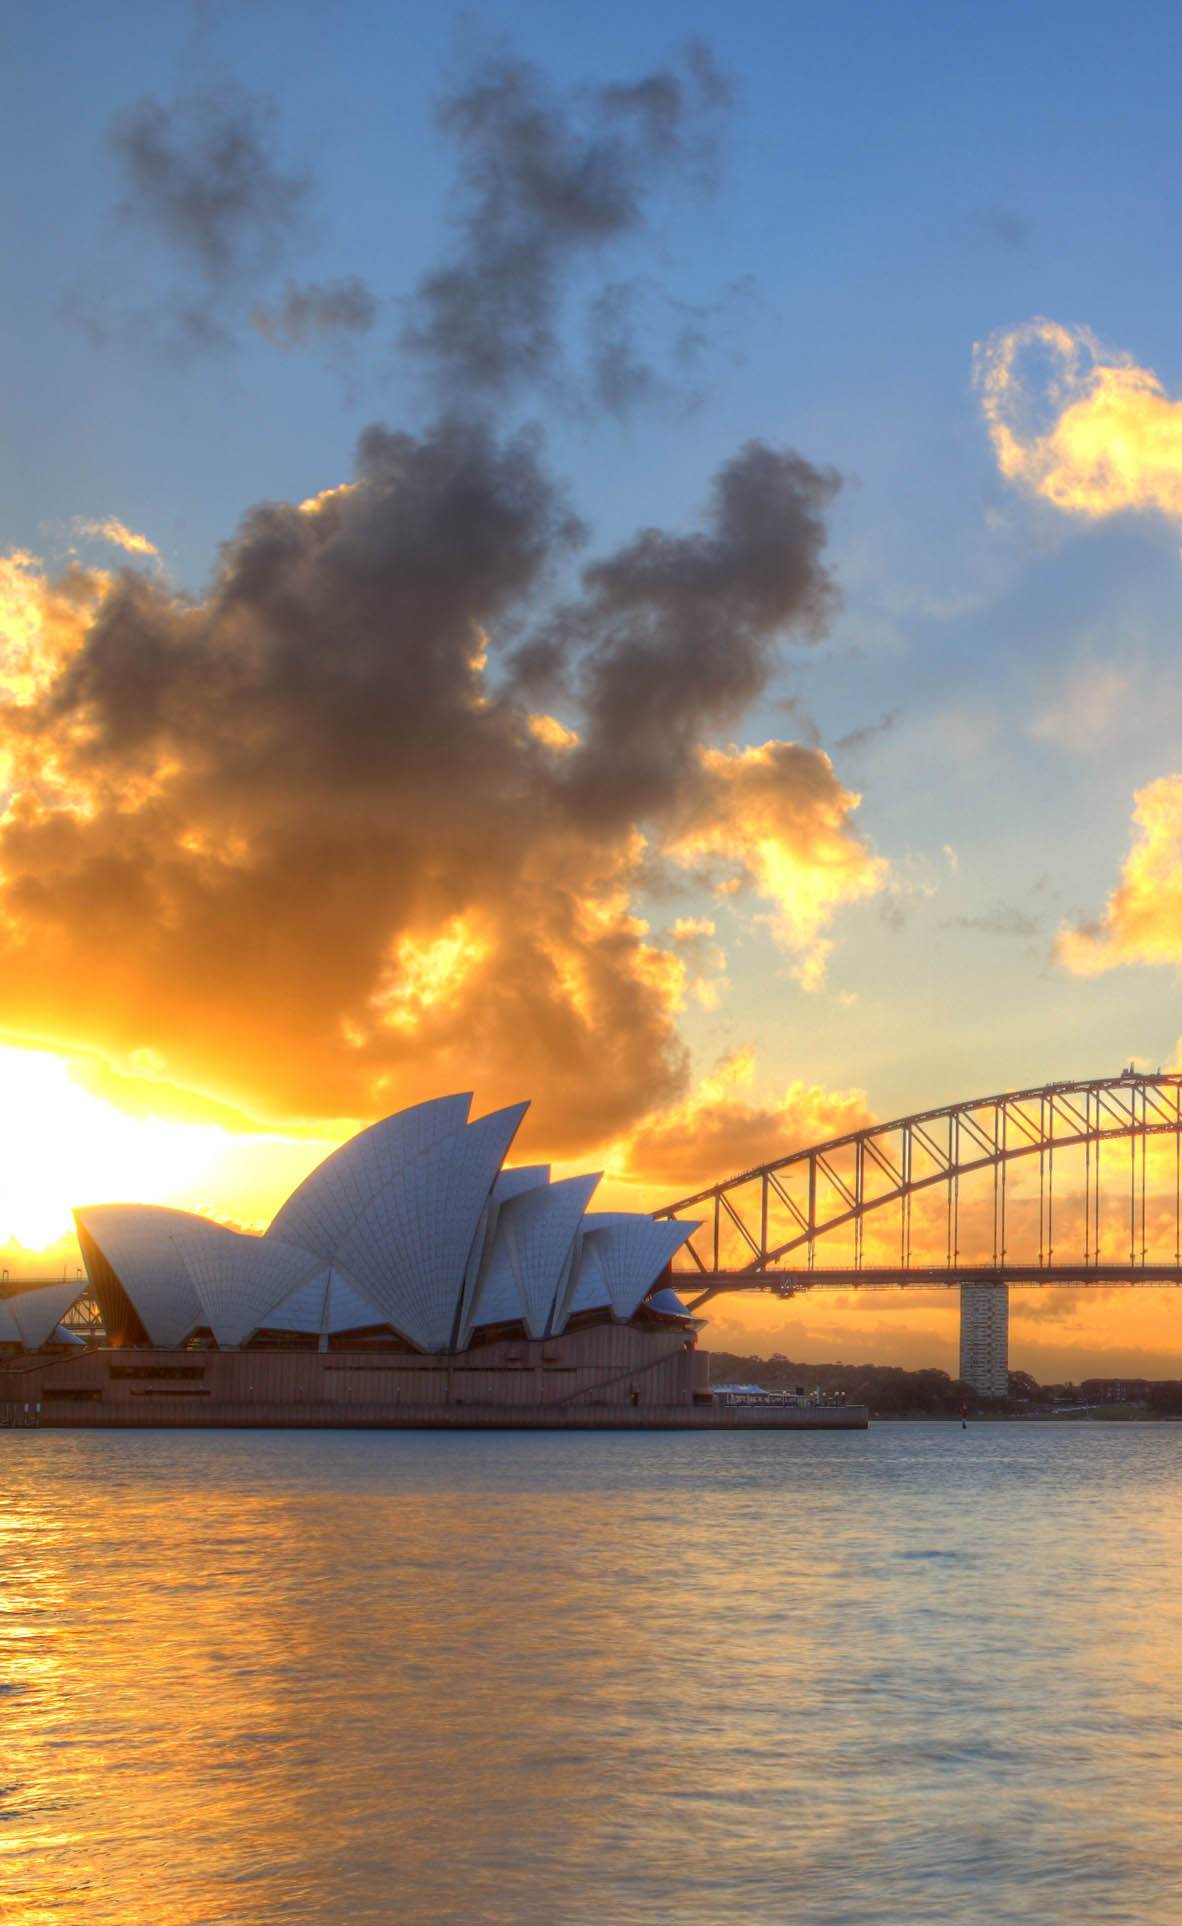 A view of Sydney Harbour with the Sydney Opera House and Harbour Bridge.